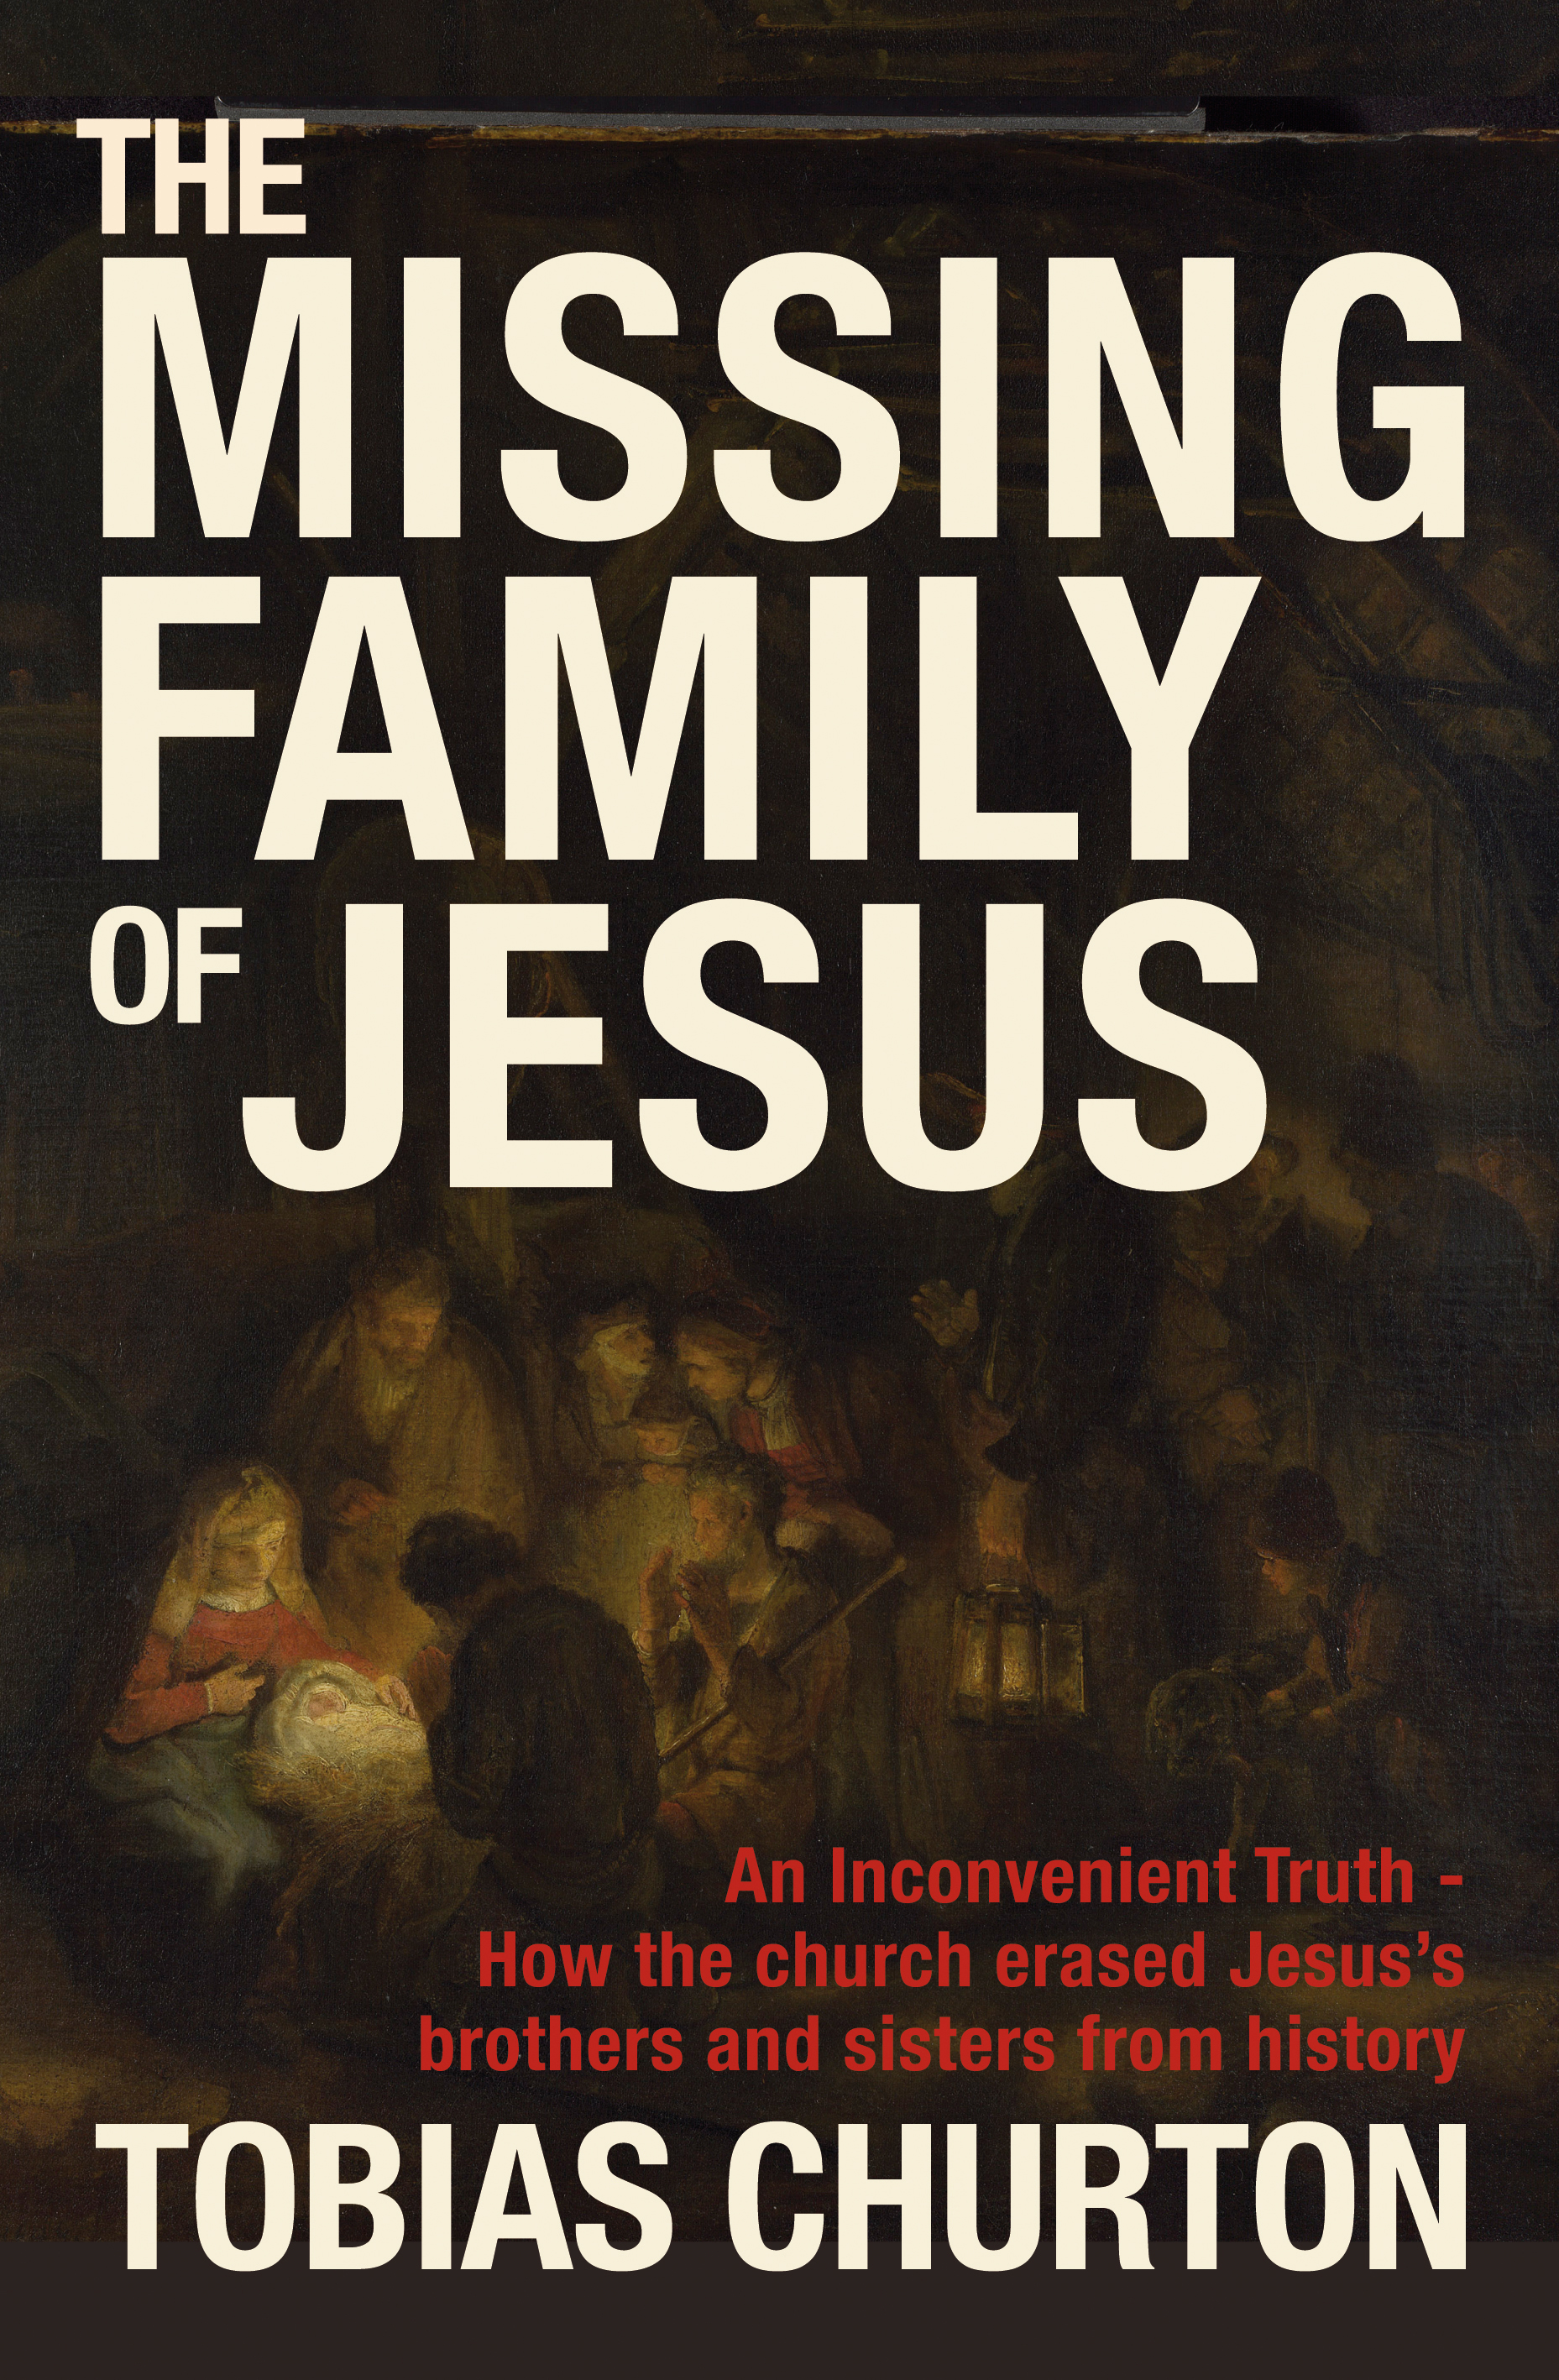 The Missing Family of Jesus - How the Church Erased Jesus's Brothers and Sisters from History